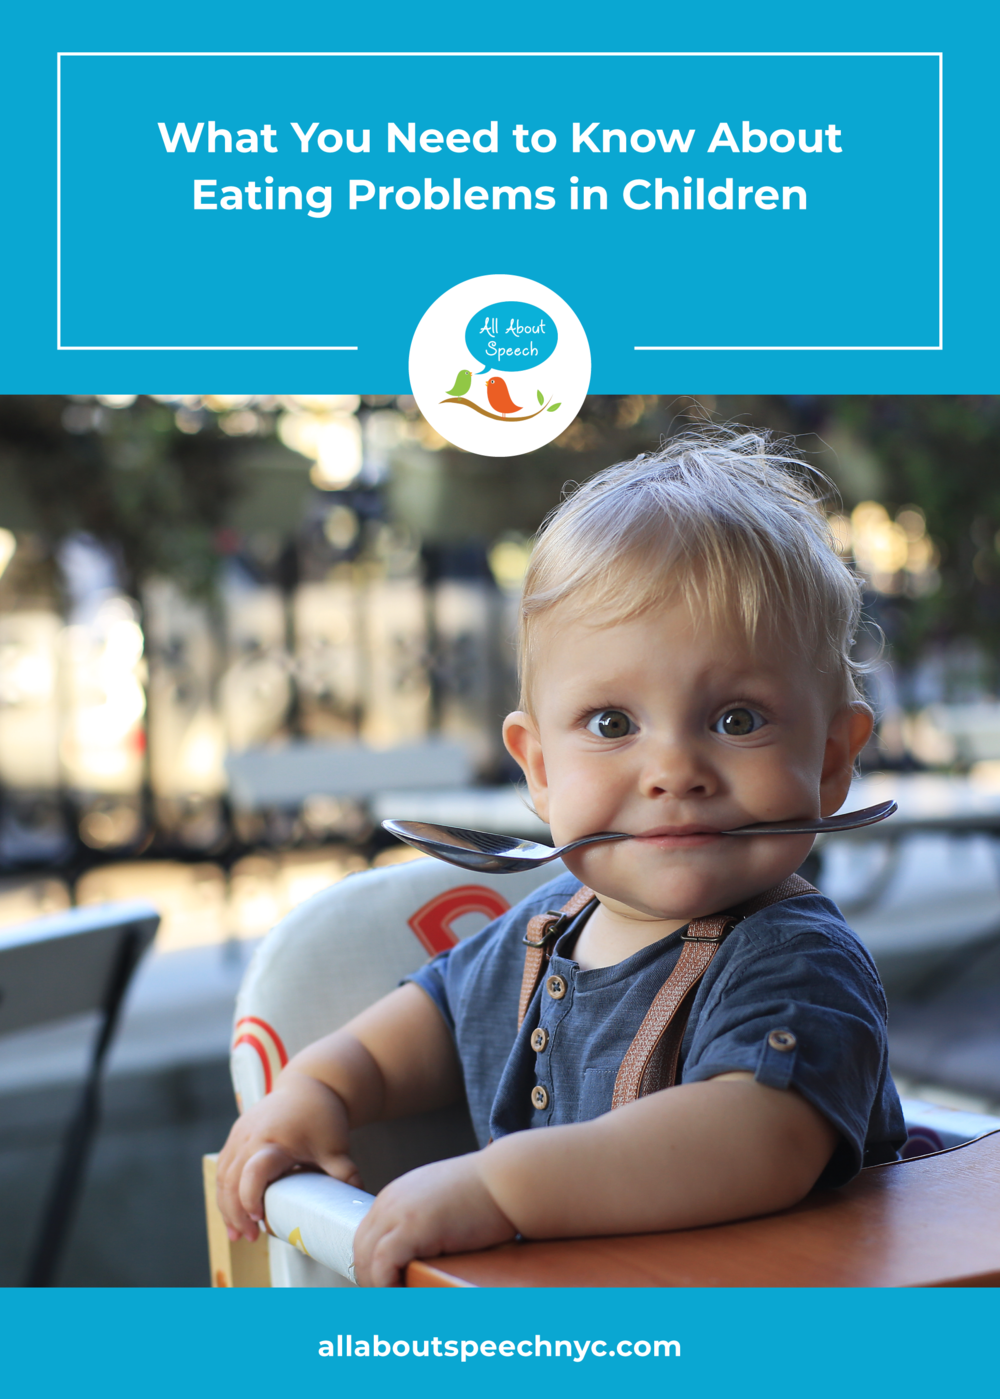 Does your child have a feeding problem?